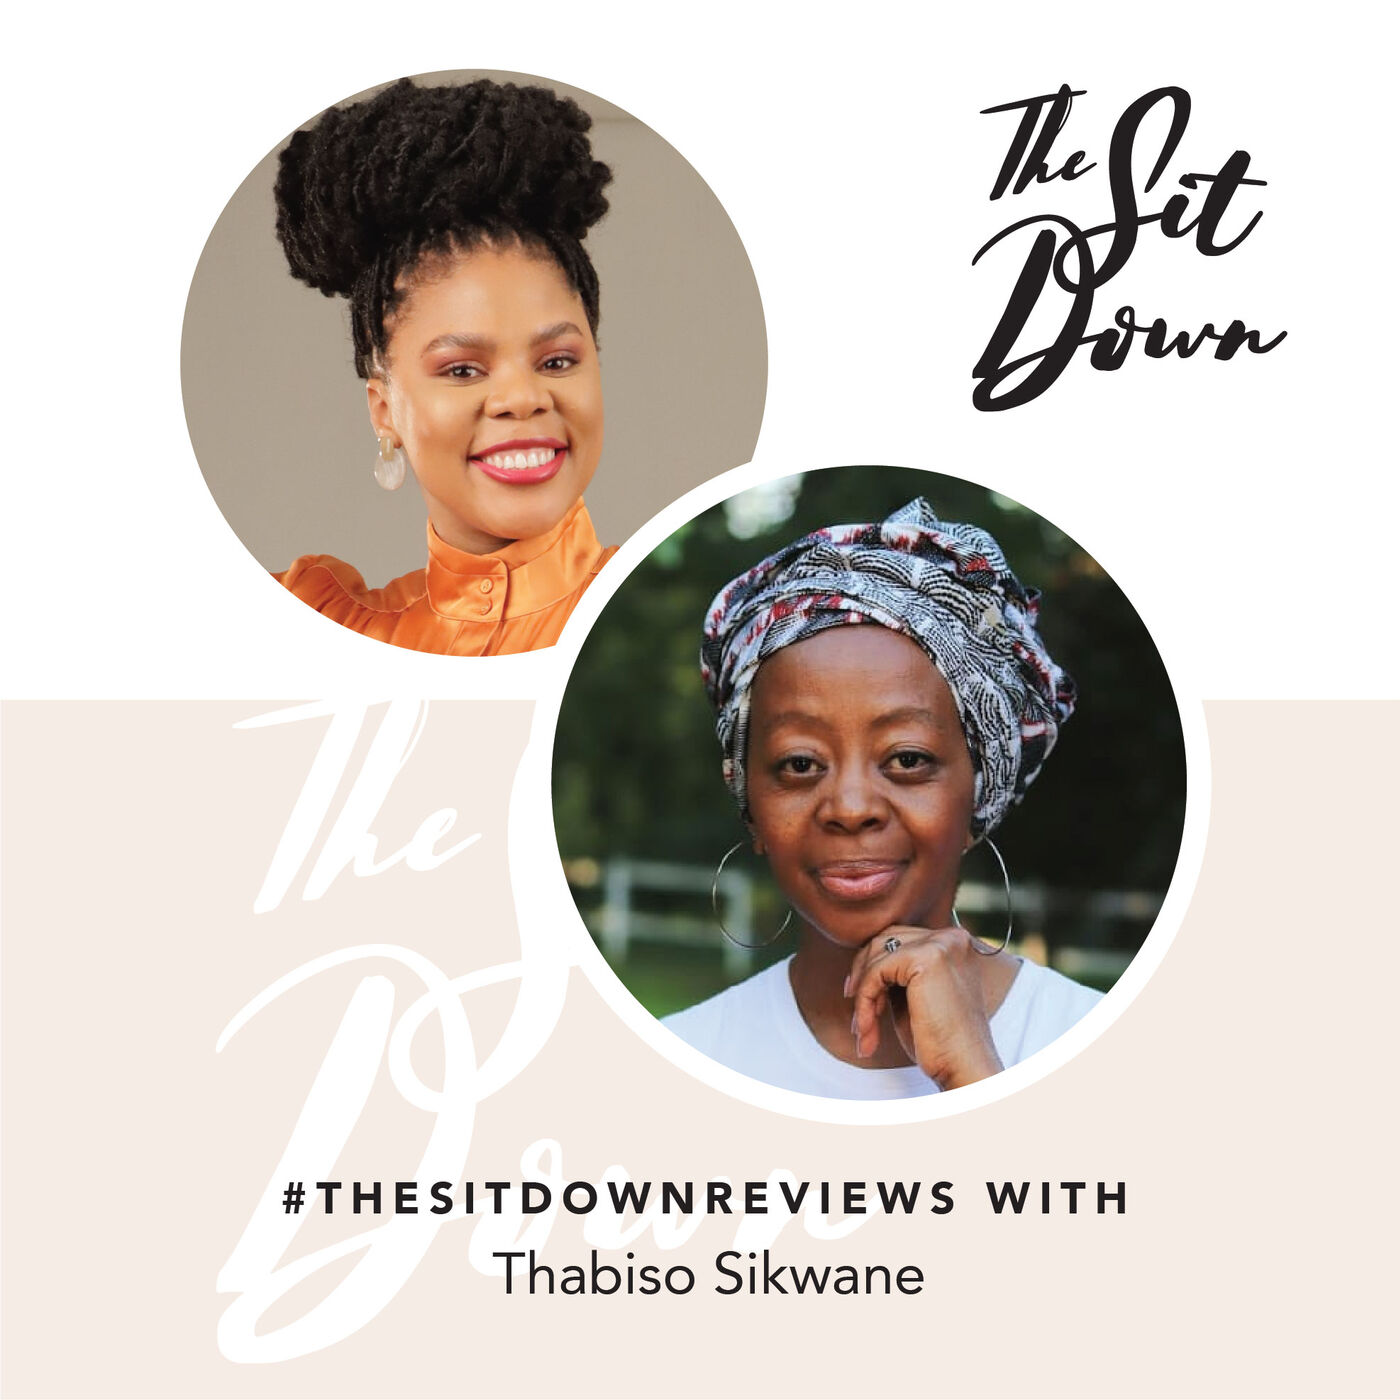 #TheSitDownReviews | Modimo O A Go Rata/God Loves You By Thabiso Sikwane